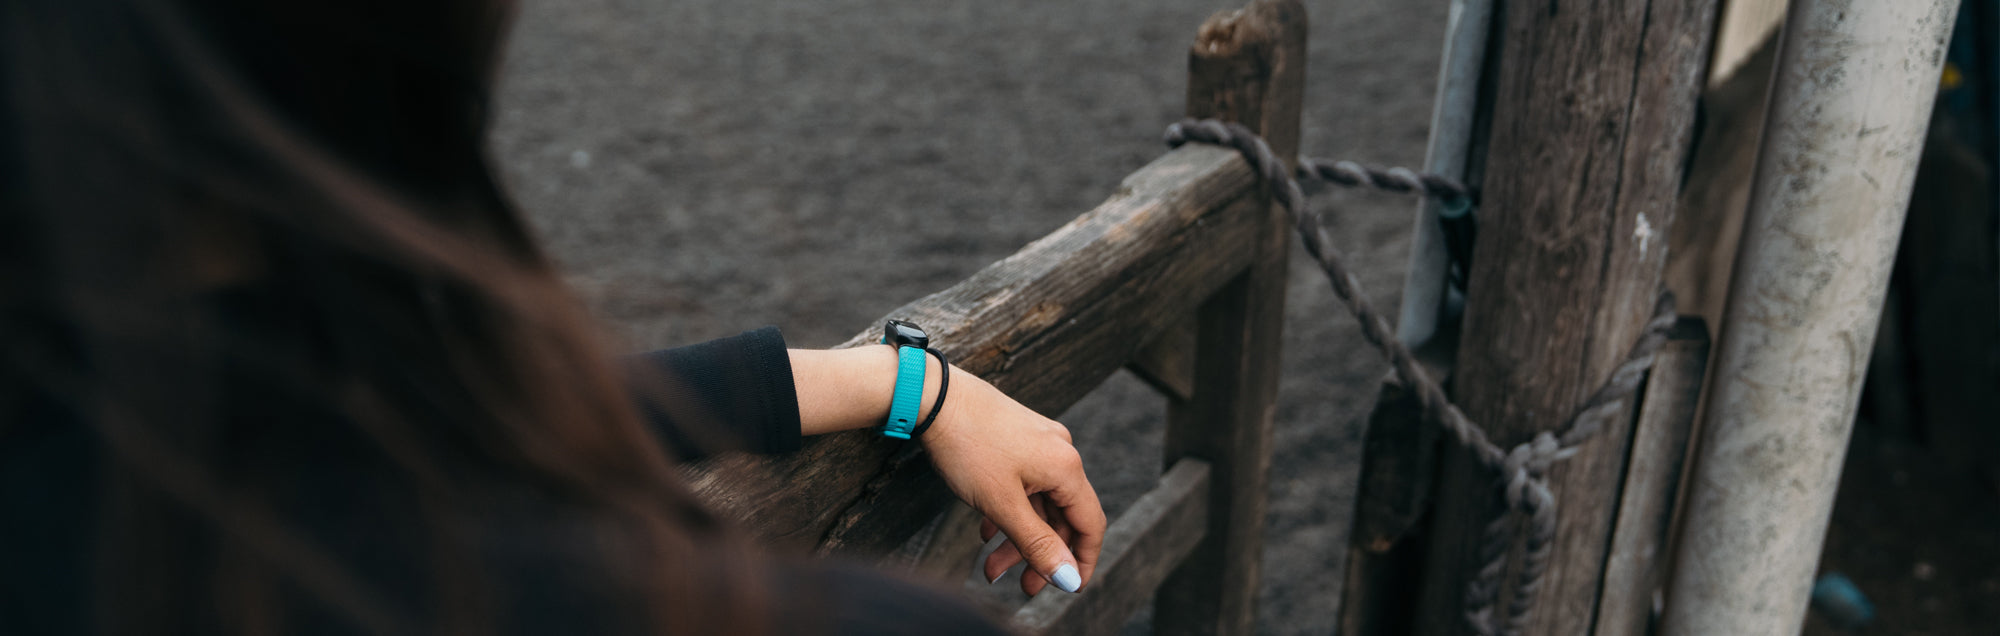 Woman wearing blue Protect on her wrist